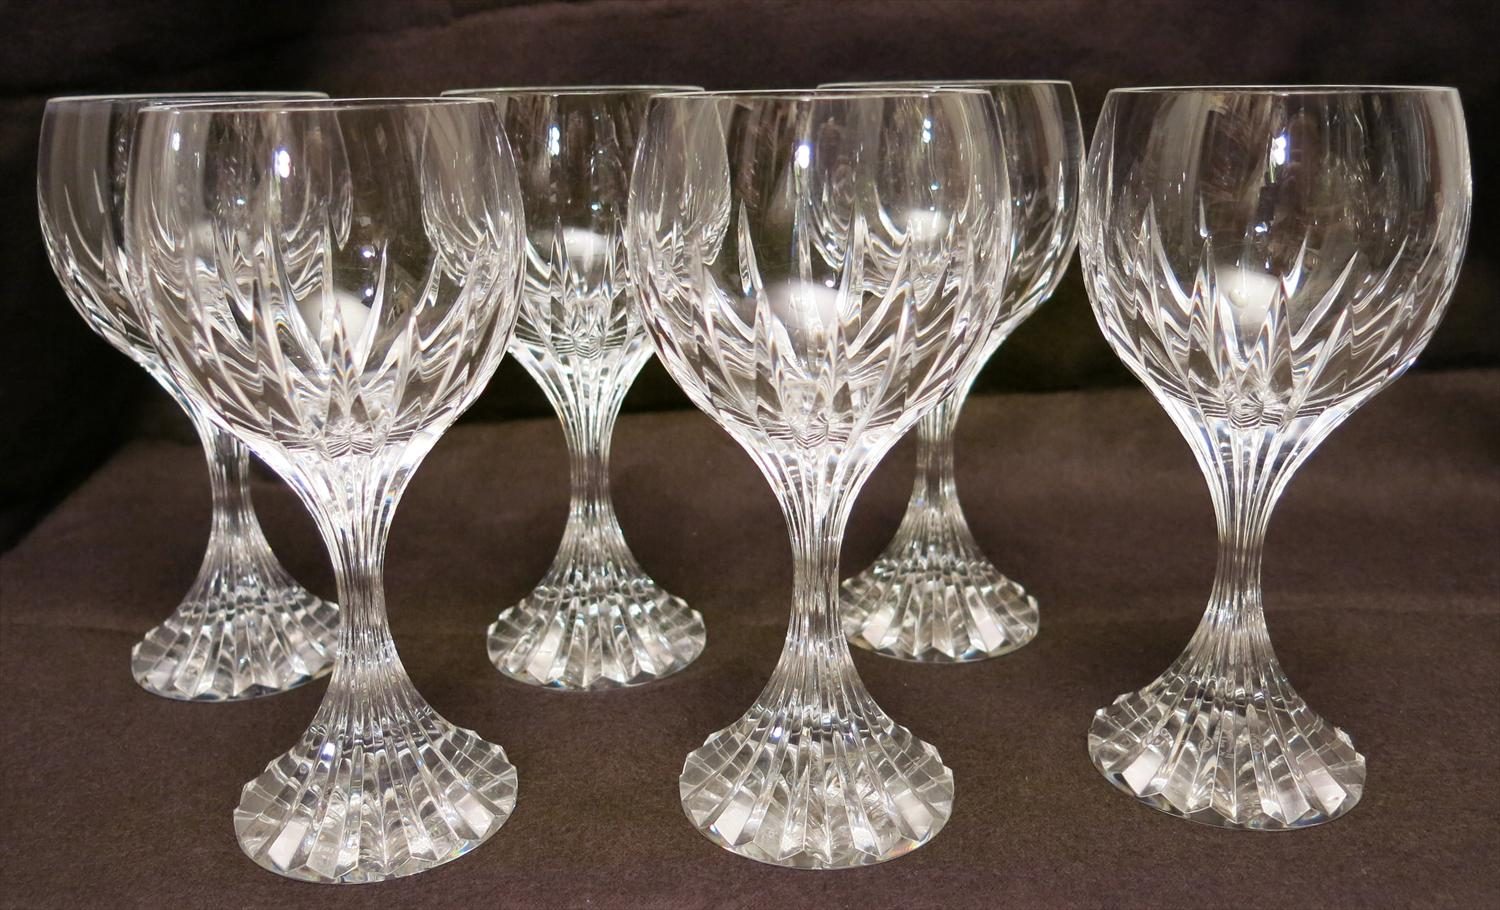 Igavel auctions set of baccarat crystal wine glasses french l4cl - Baccarat stemware ...